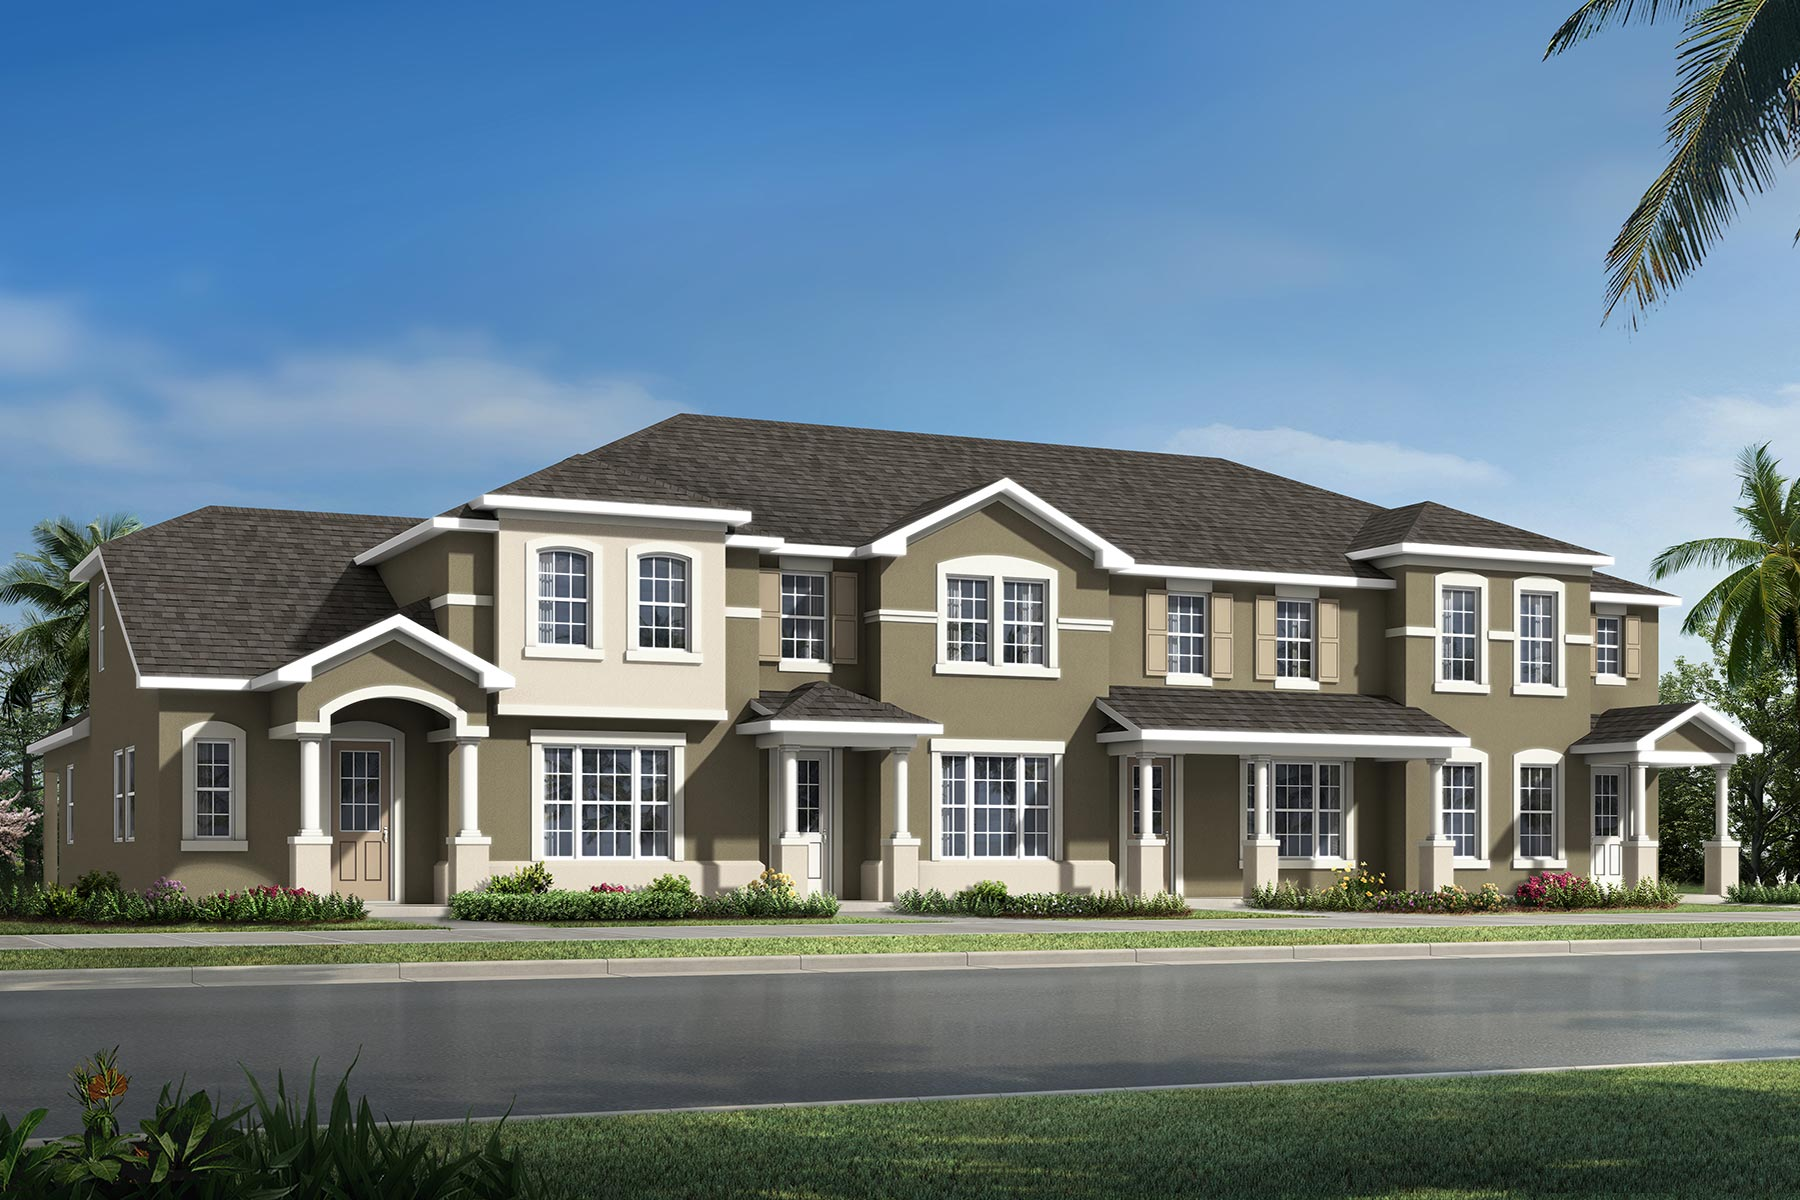 Camilla III Plan TownHomes at Waterbrooke in Clermont Florida by Mattamy Homes